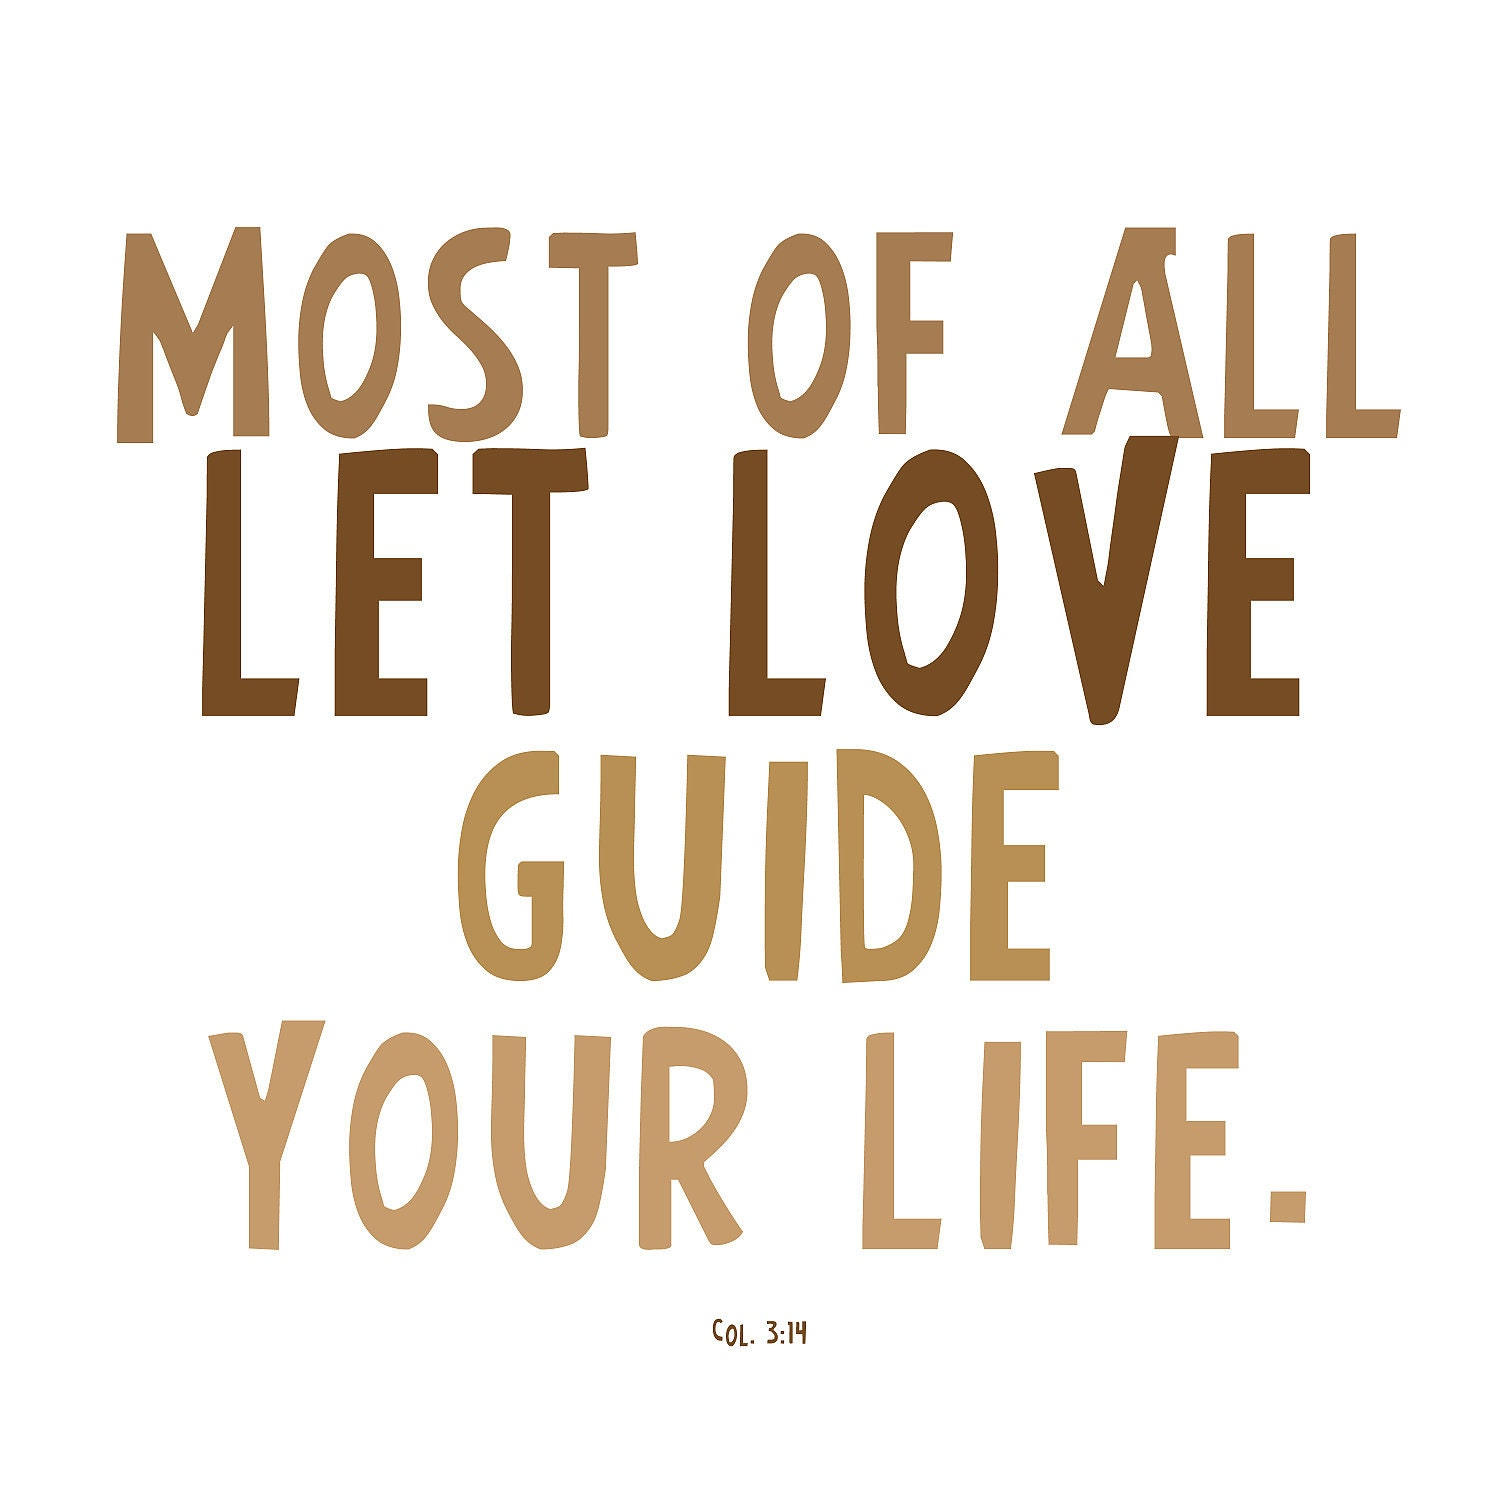 Love Quotes About Life: Print Love Quote Bible Verse Let Love Guide Your Life